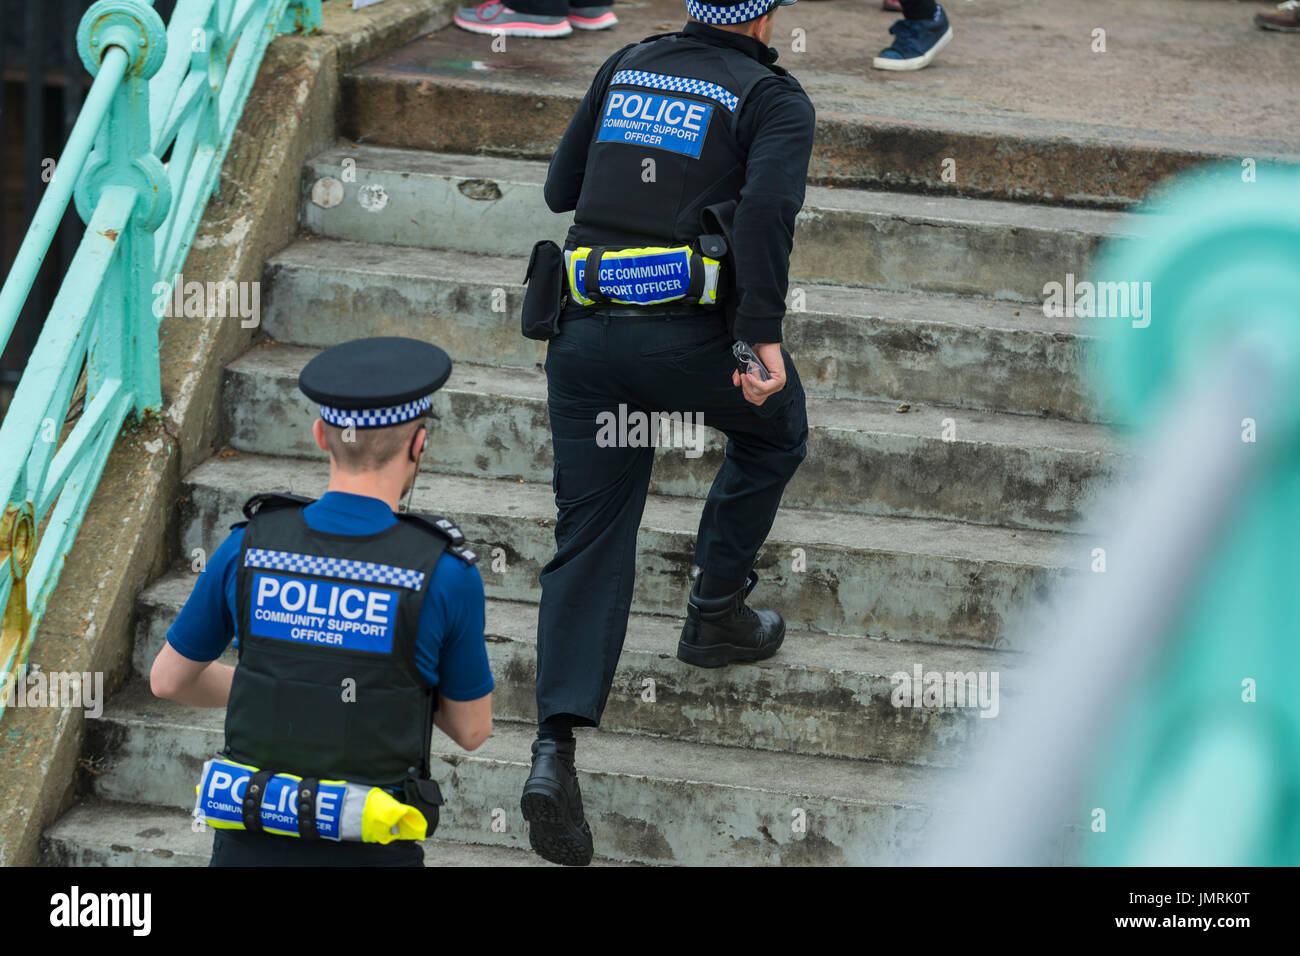 PCSOs (Police Community Support Officers) läuft bis Schritte in Brighton, East Sussex, England, UK. Stockbild